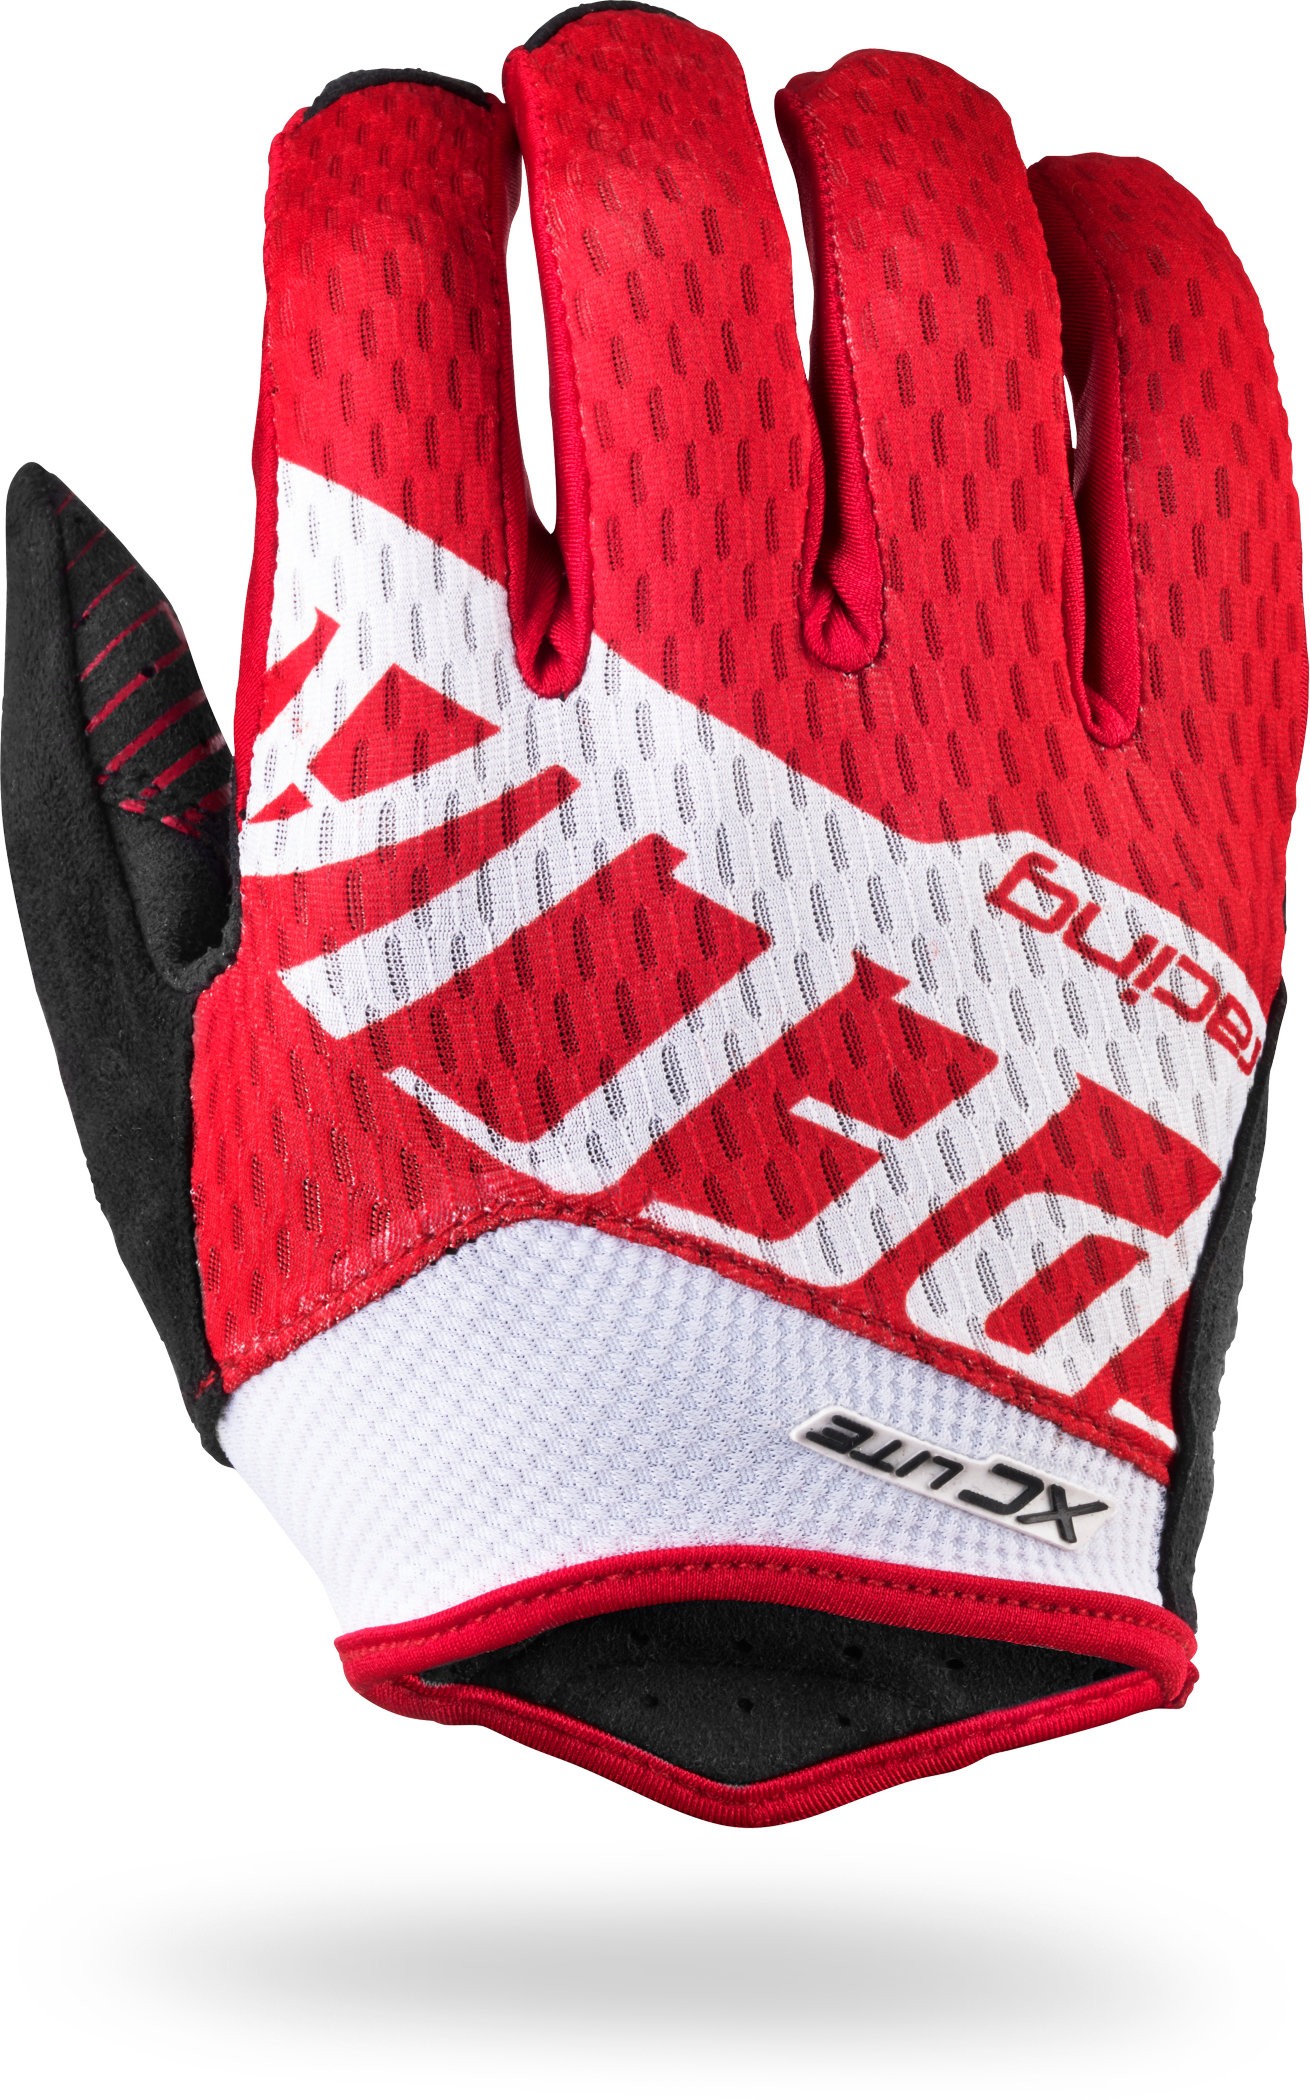 SPECIALIZED XC LITE GLOVE RED/WHT TEAM S - Alpha Bikes